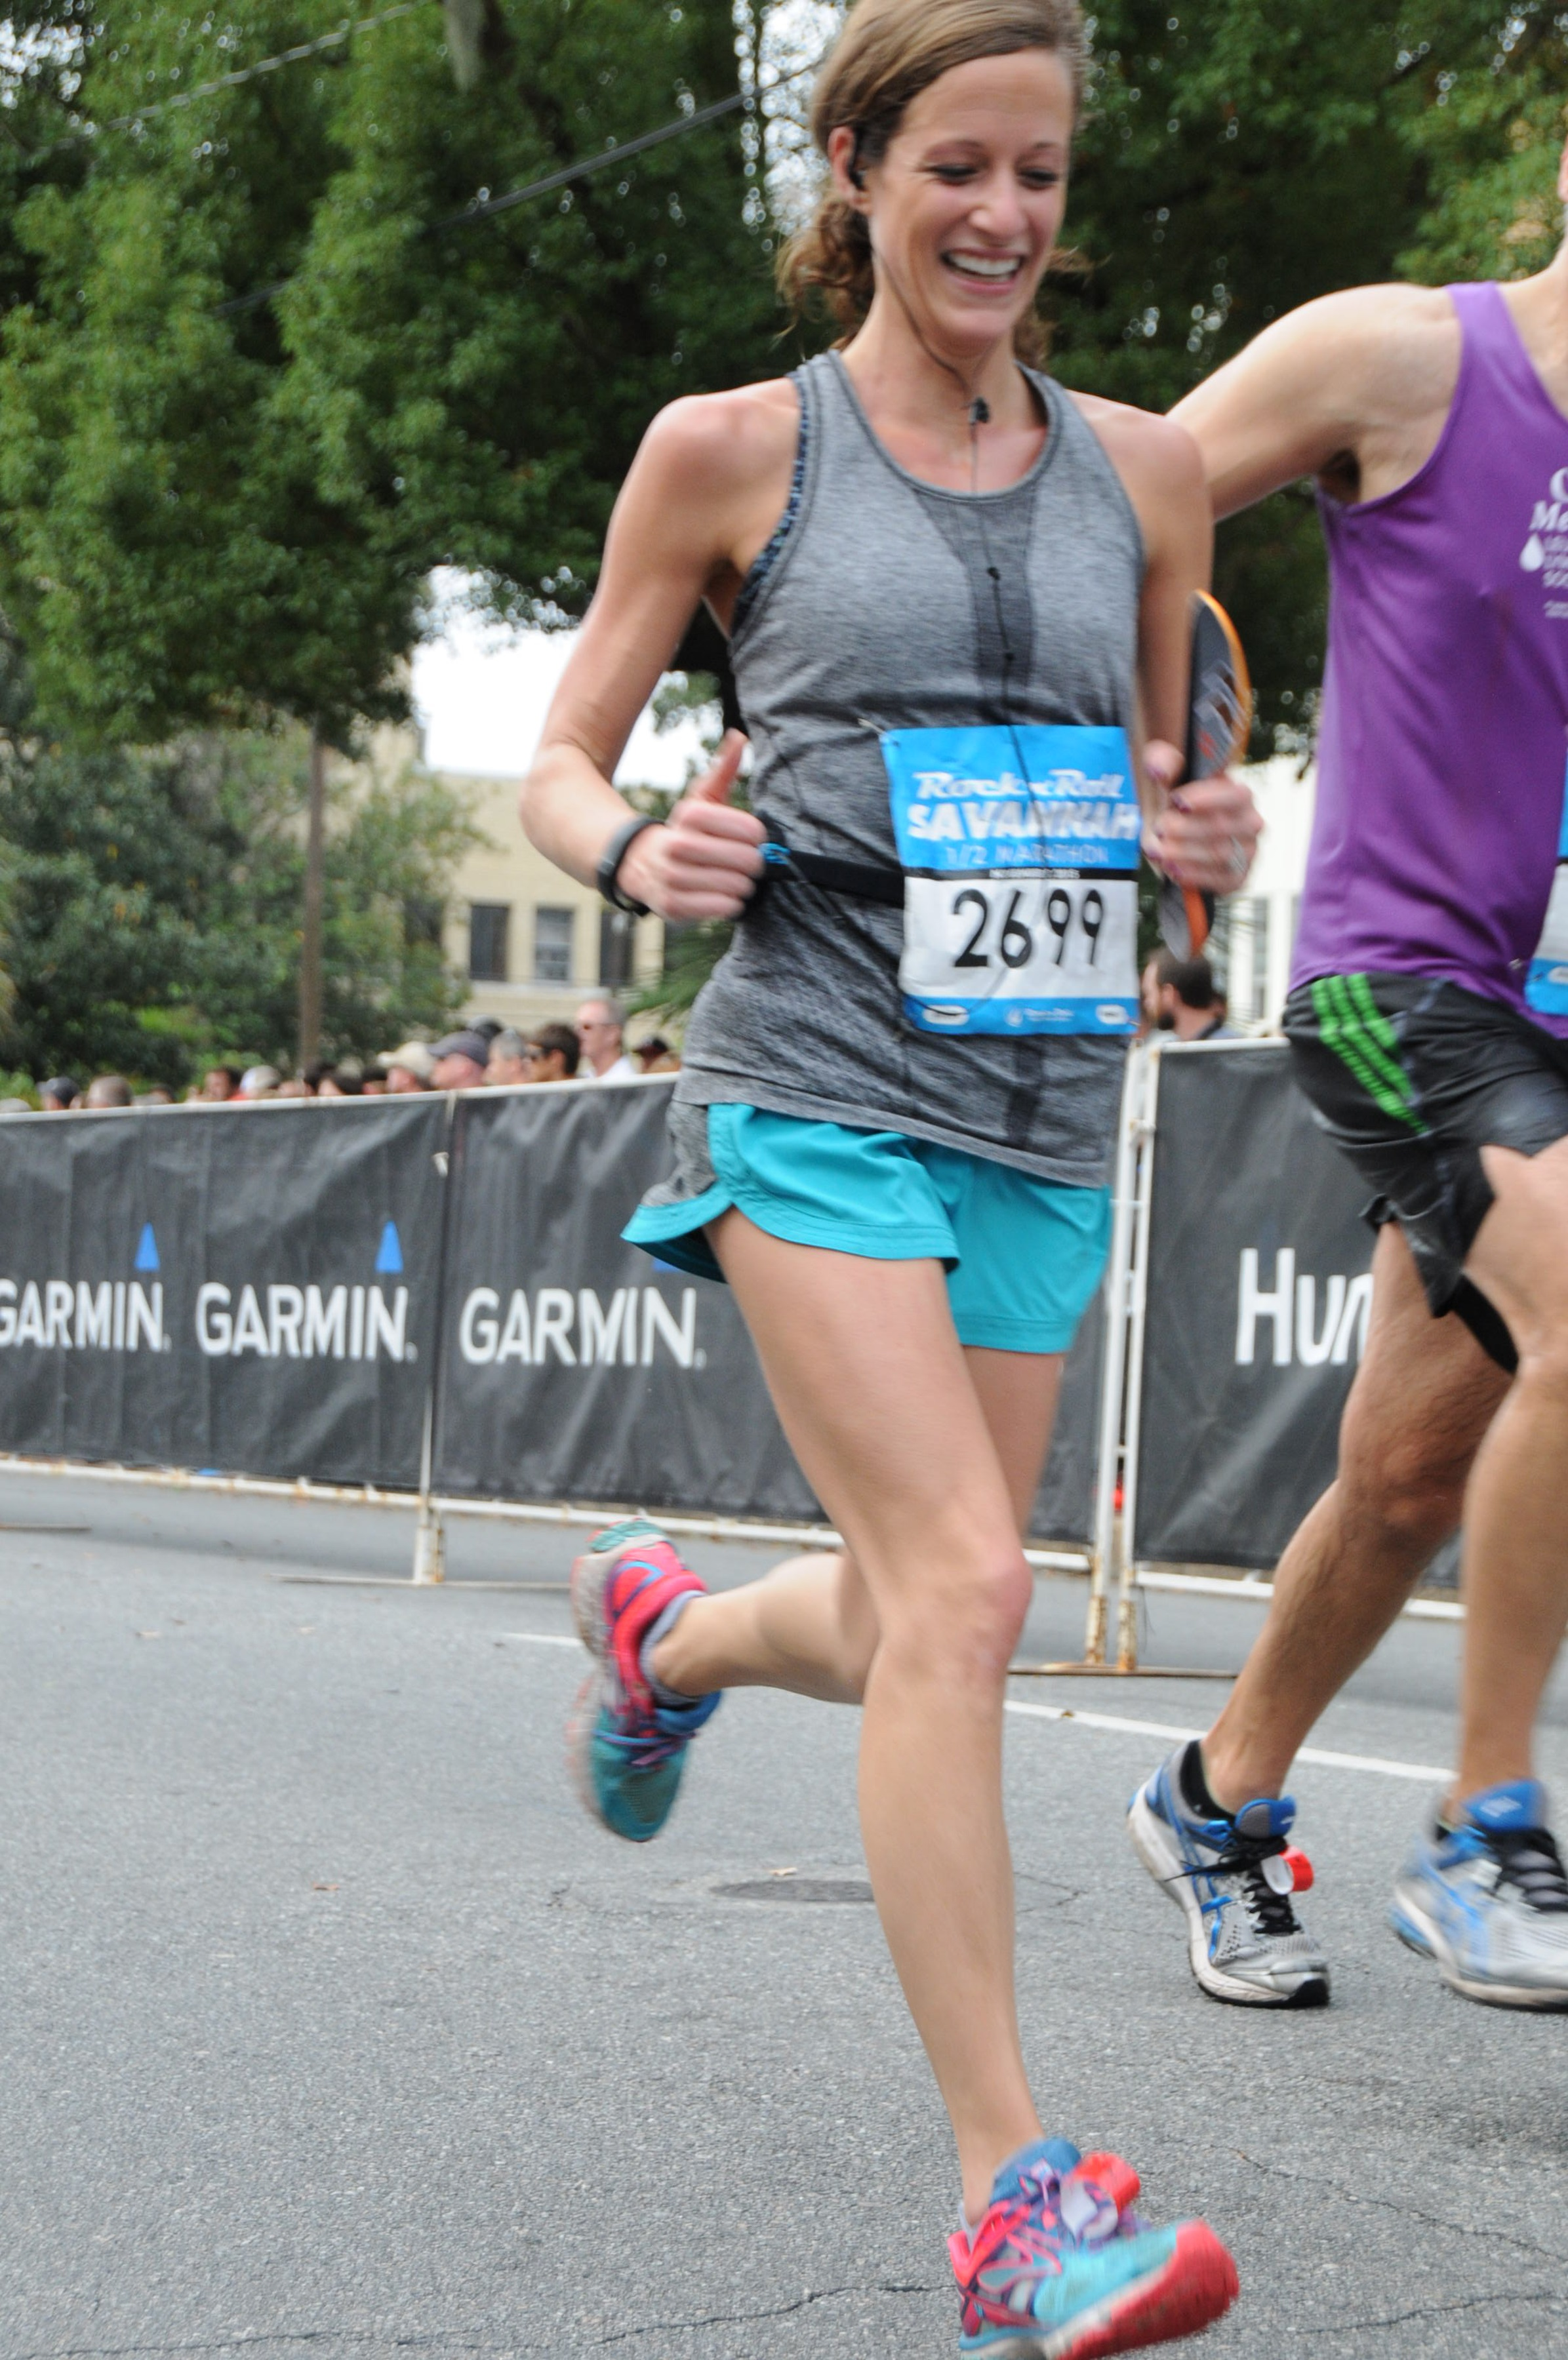 ***This was towards the finish line in Savannah where I met a new friend to compete against across the finish line. Also, that is my insole in my left hand that I had to take out at mile 6 because it had given me a blister the size of an egg. The moral of that story is don't buy new insoles or shoes at the Expo, stick to what you already have.